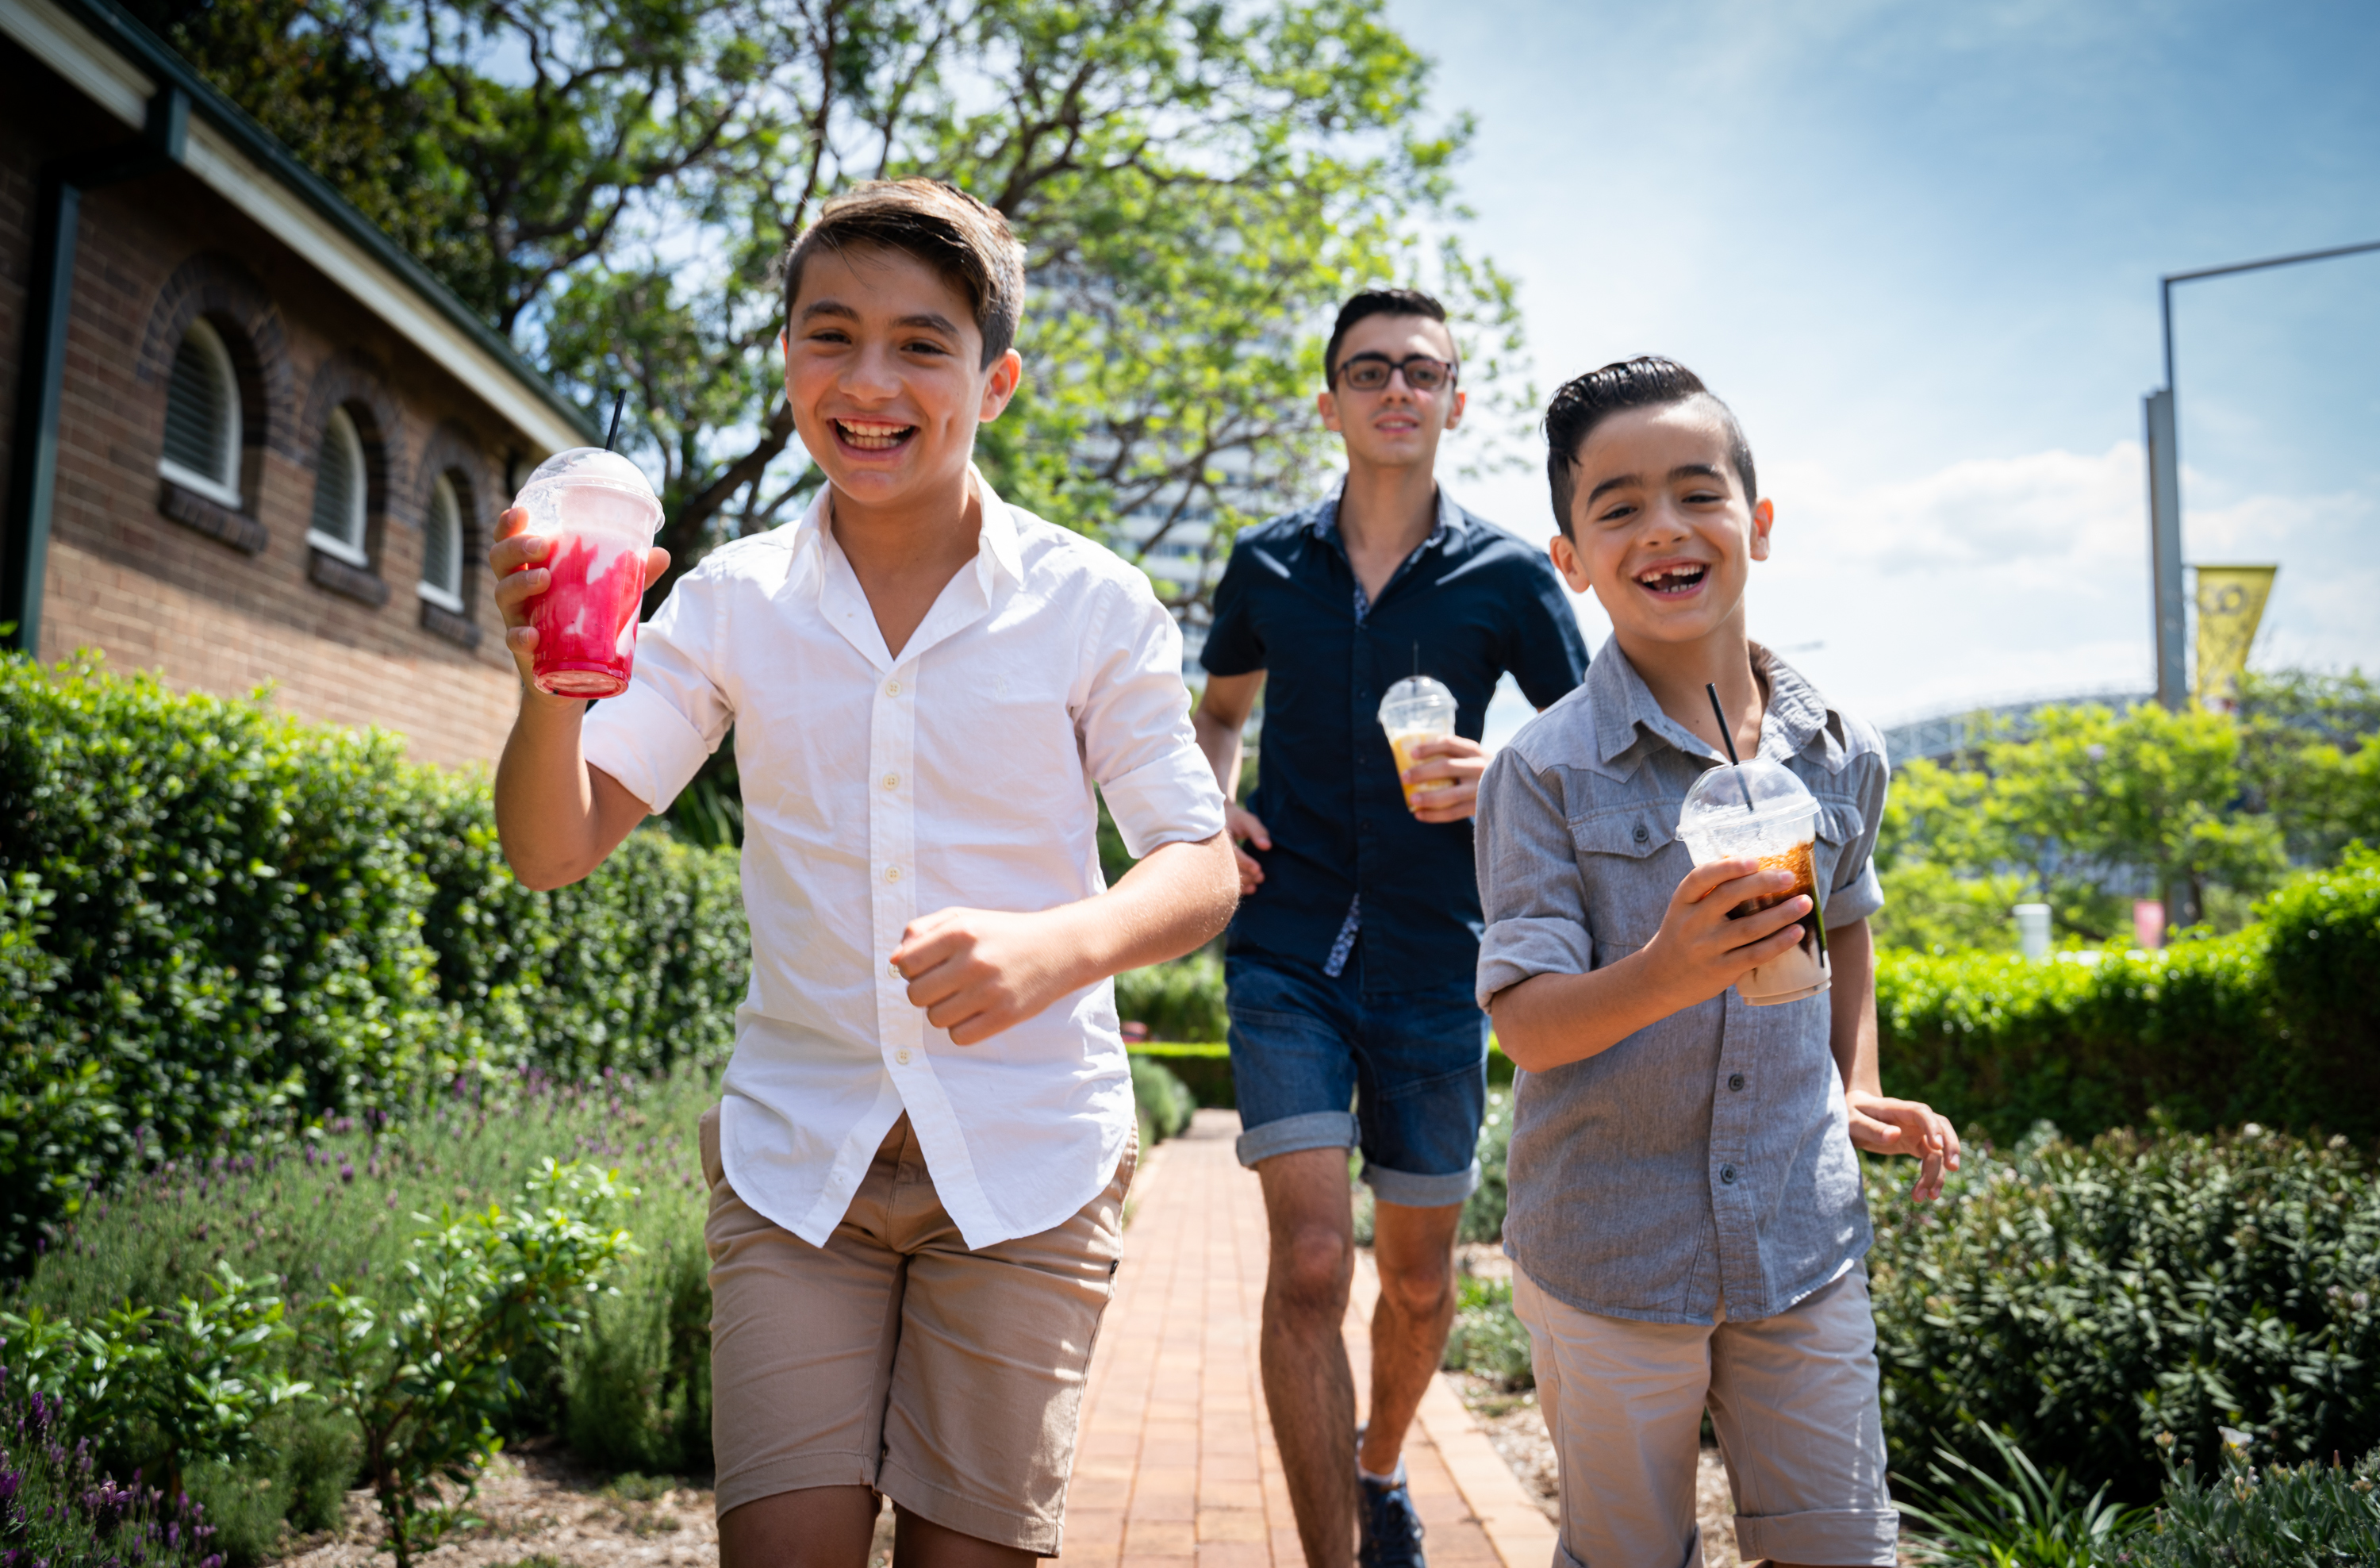 Three young people run through a garden holding colourful drinks and laughing